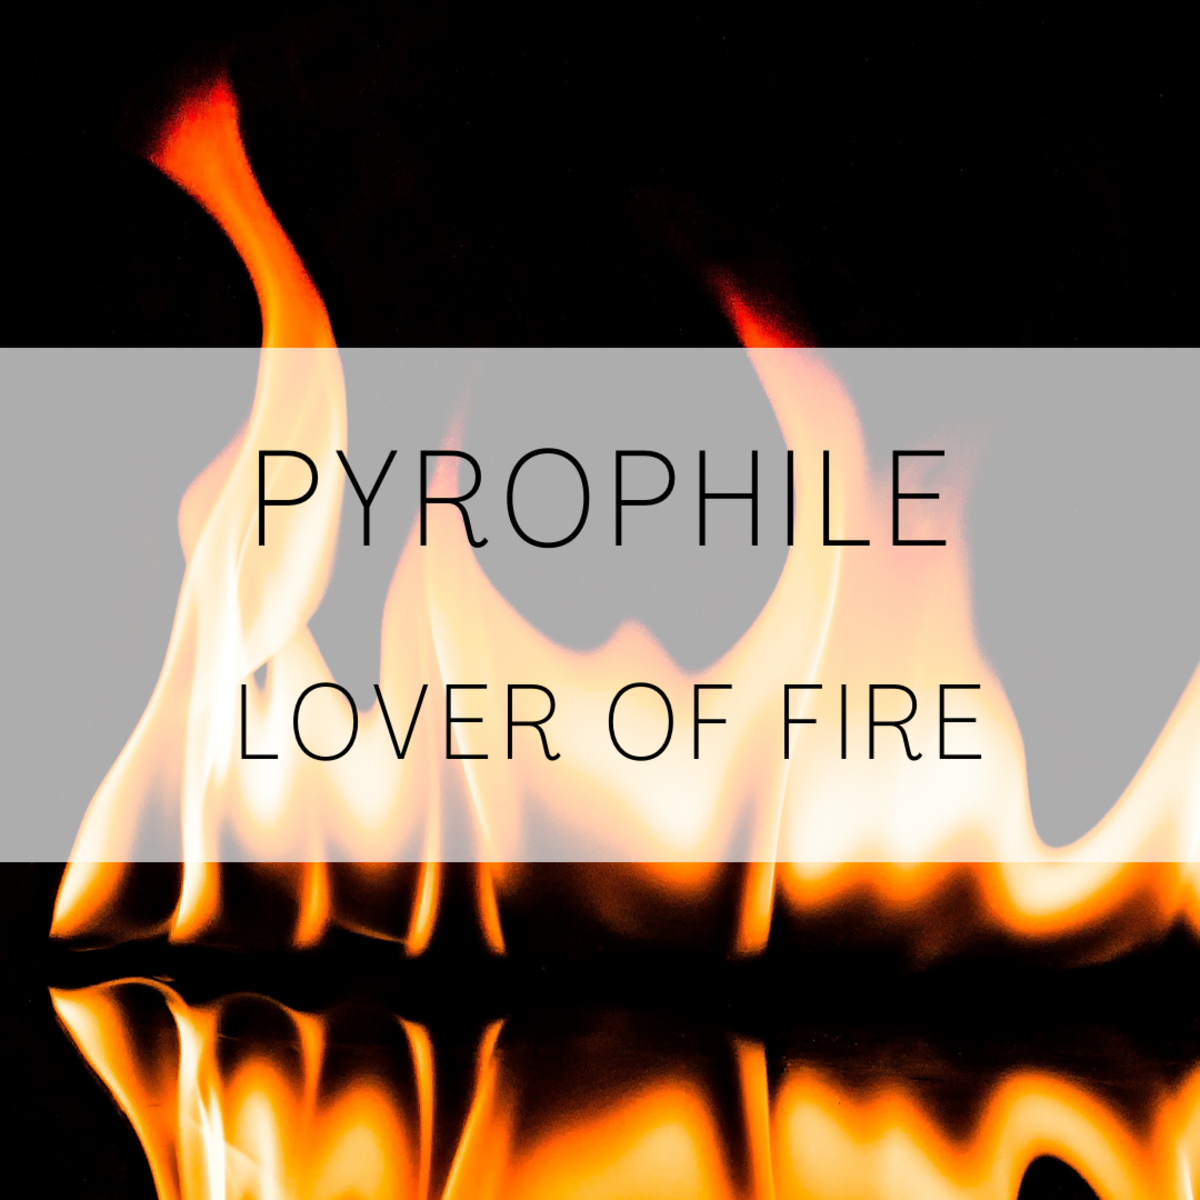 Pyrophile, a lover of fire